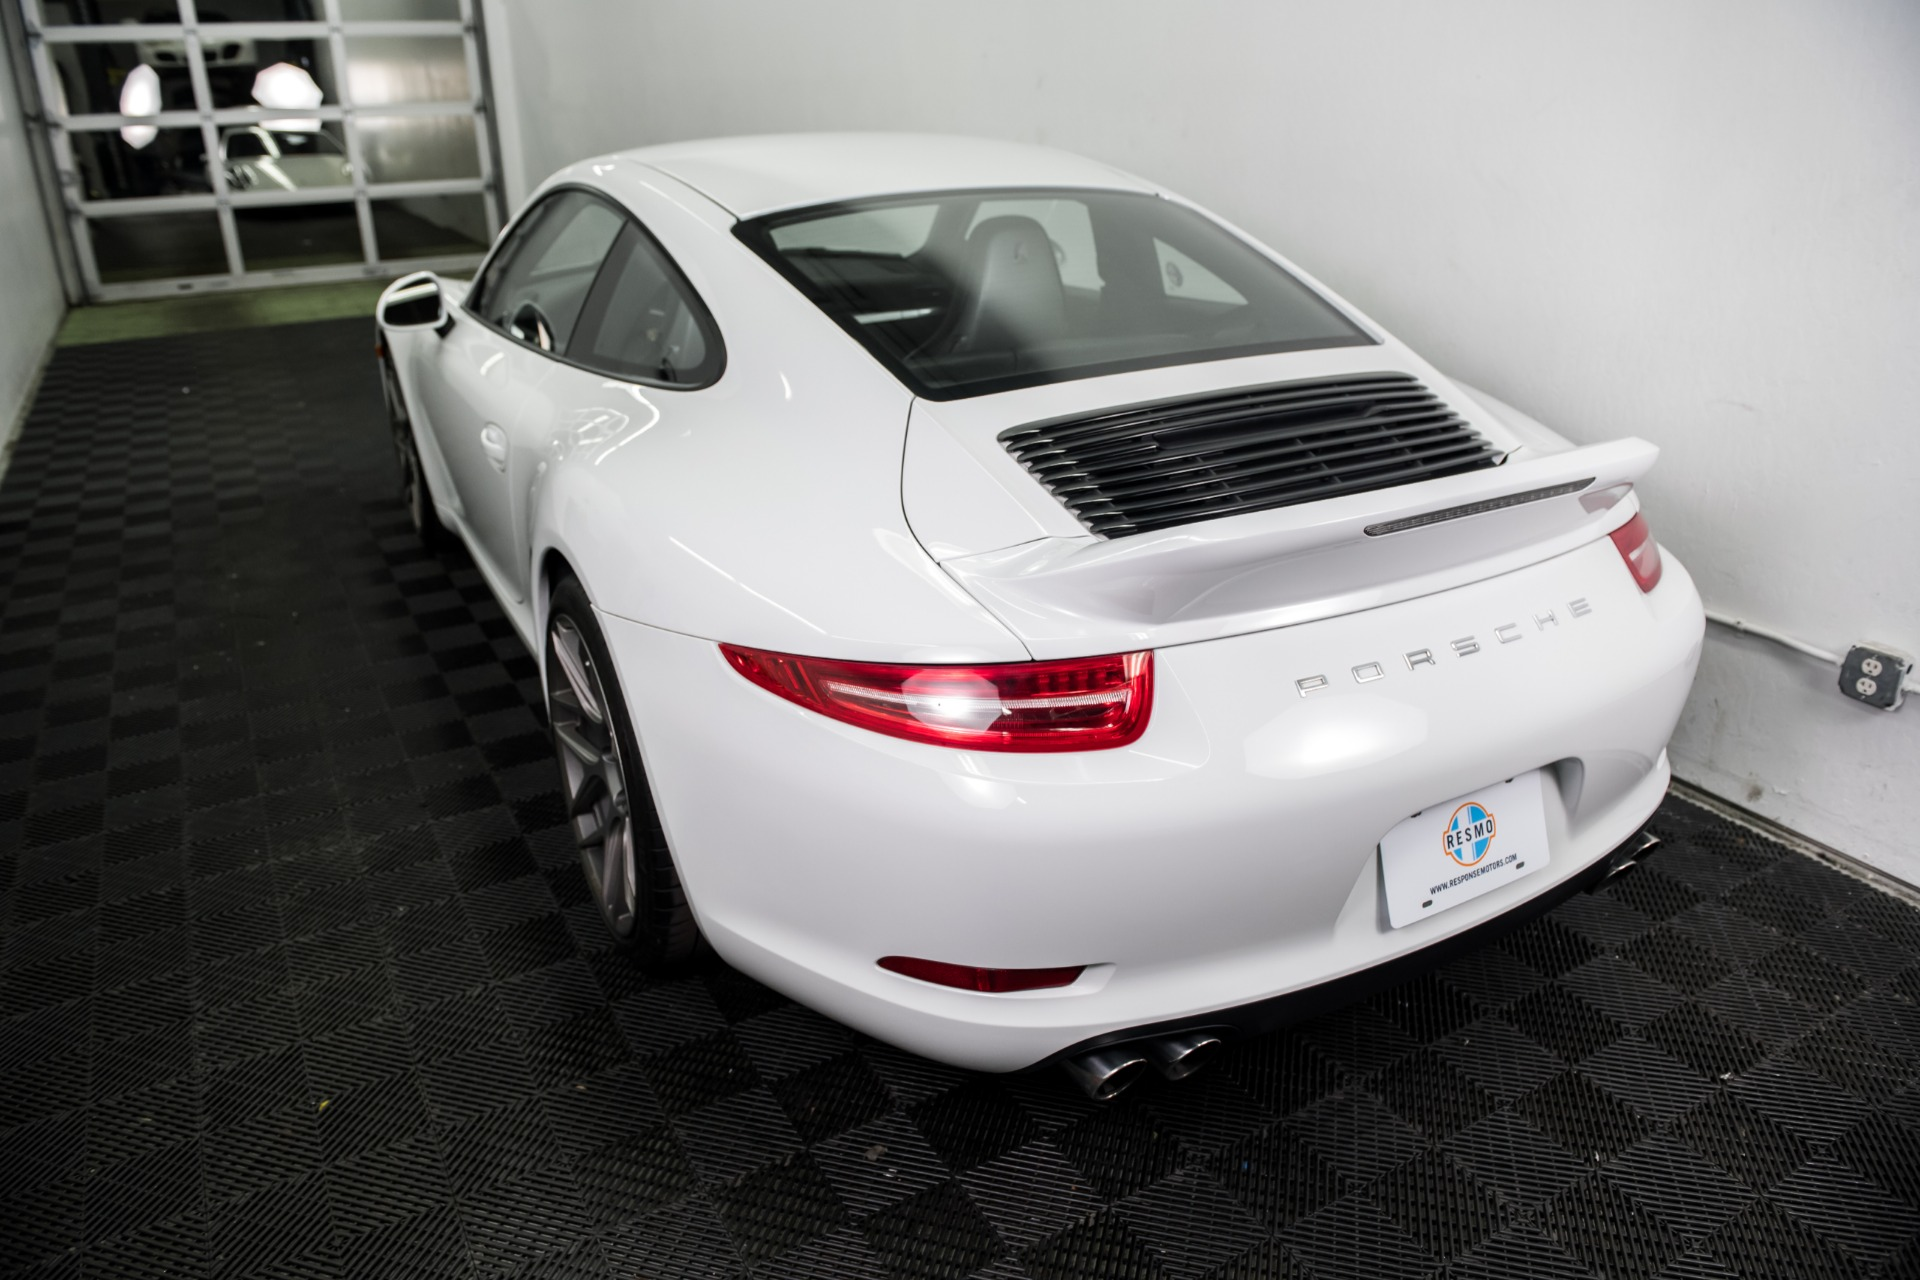 Used 2013 Porsche 911 Carrera S Used 2013 Porsche 911 Carrera S for sale Sold at Response Motors in Mountain View CA 8